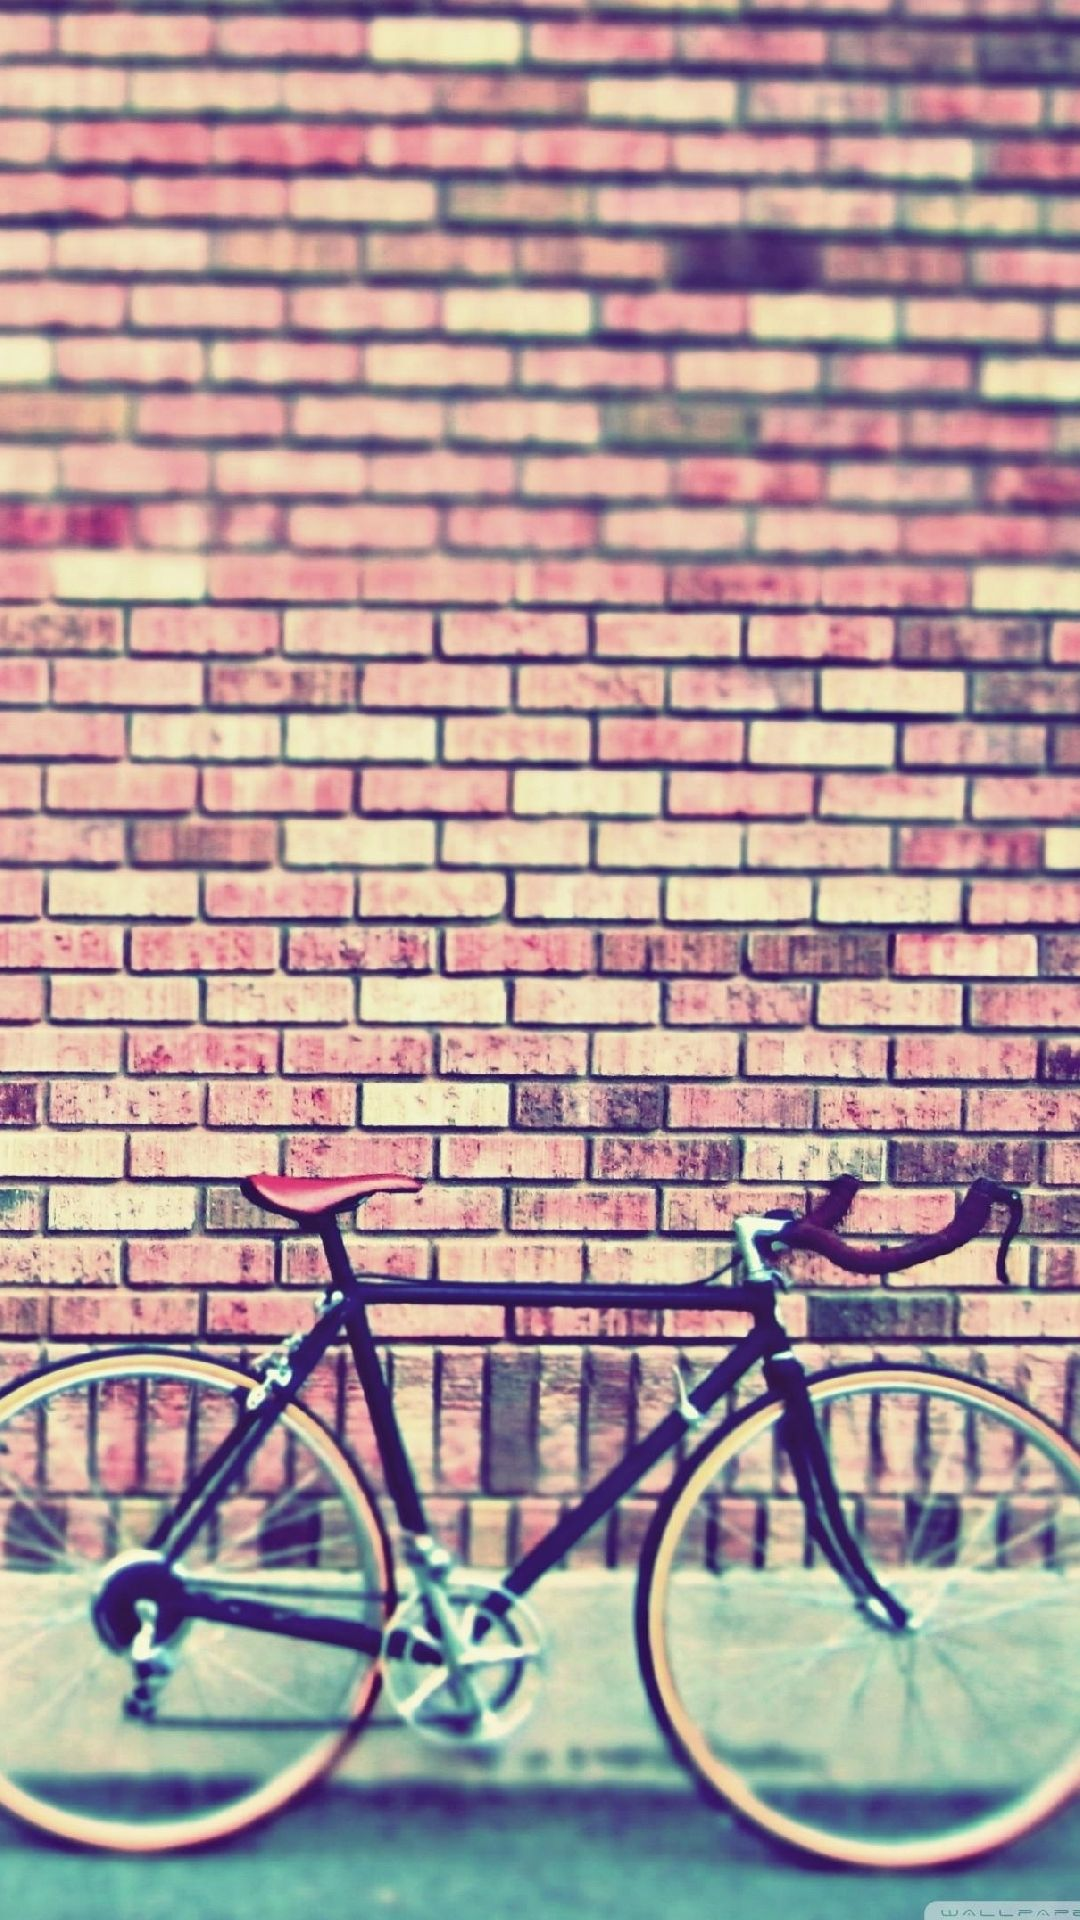 Vintage Bicycle Wallpaper Ipad Air Wallpaper Hipster Wallpaper